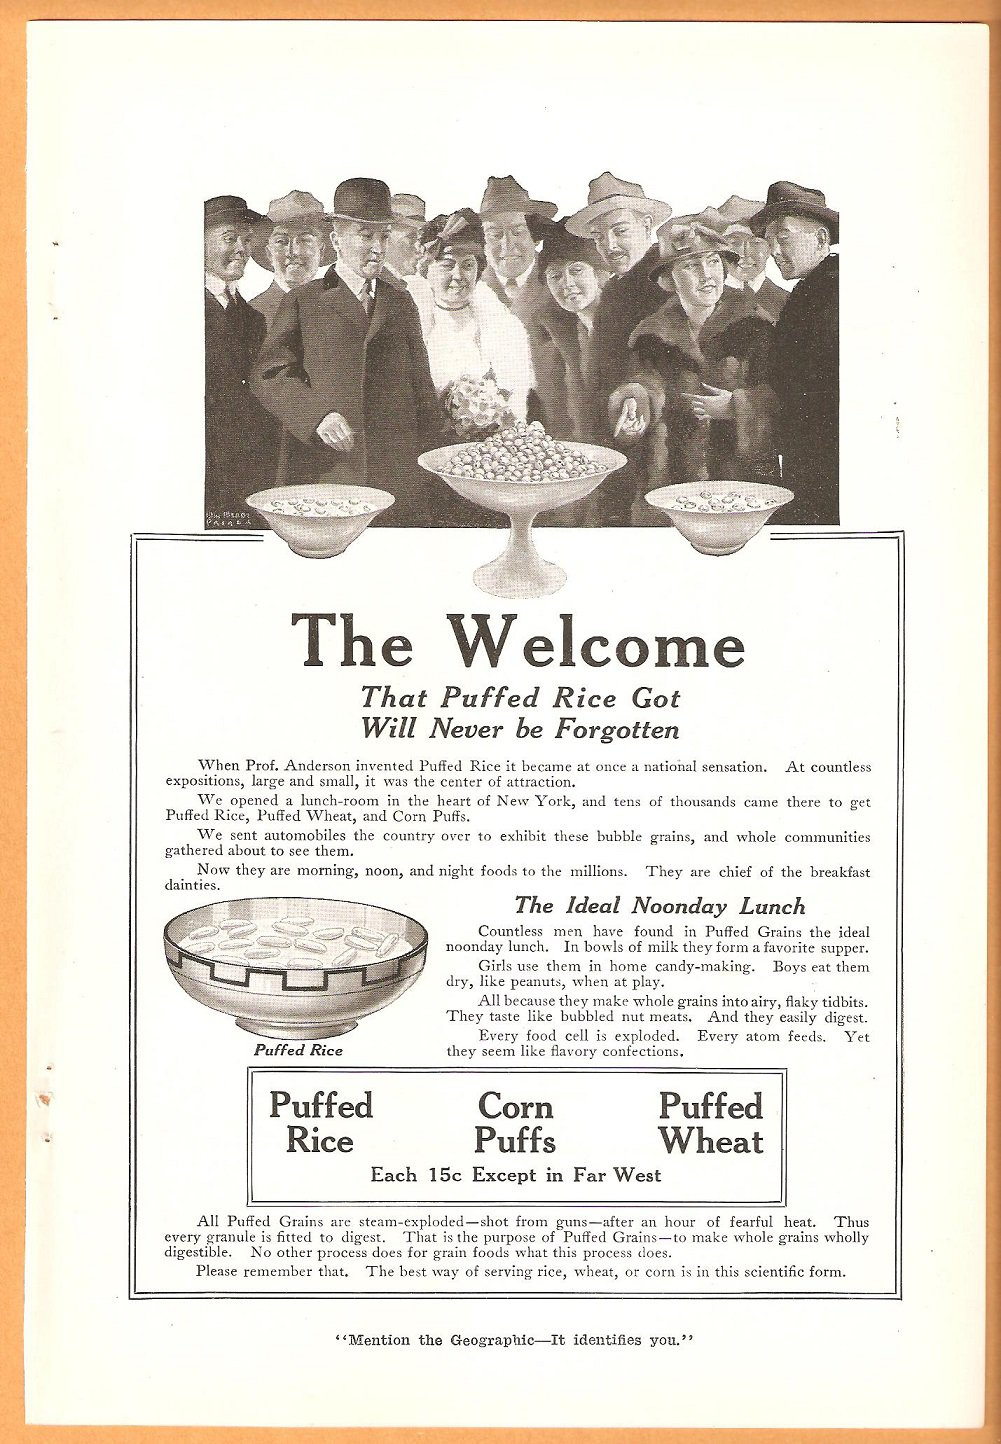 PUFFED RICE PUFFED WHEAT CORN PUFFS ORIGINAL 1918 AD